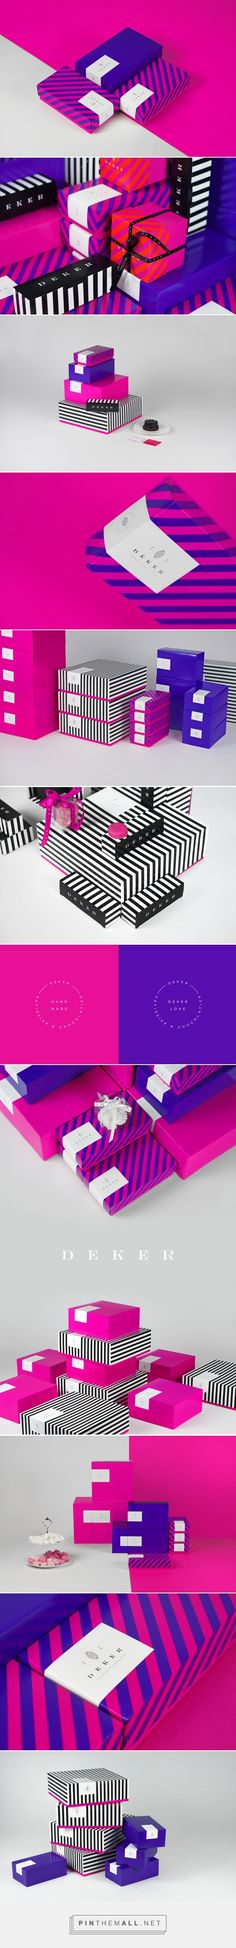 Deker Patissier and Chocolatier Branding and Packaging by Less. | Fivestar Branding Agency – Design and Branding Agency & Curated Inspiration Gallery